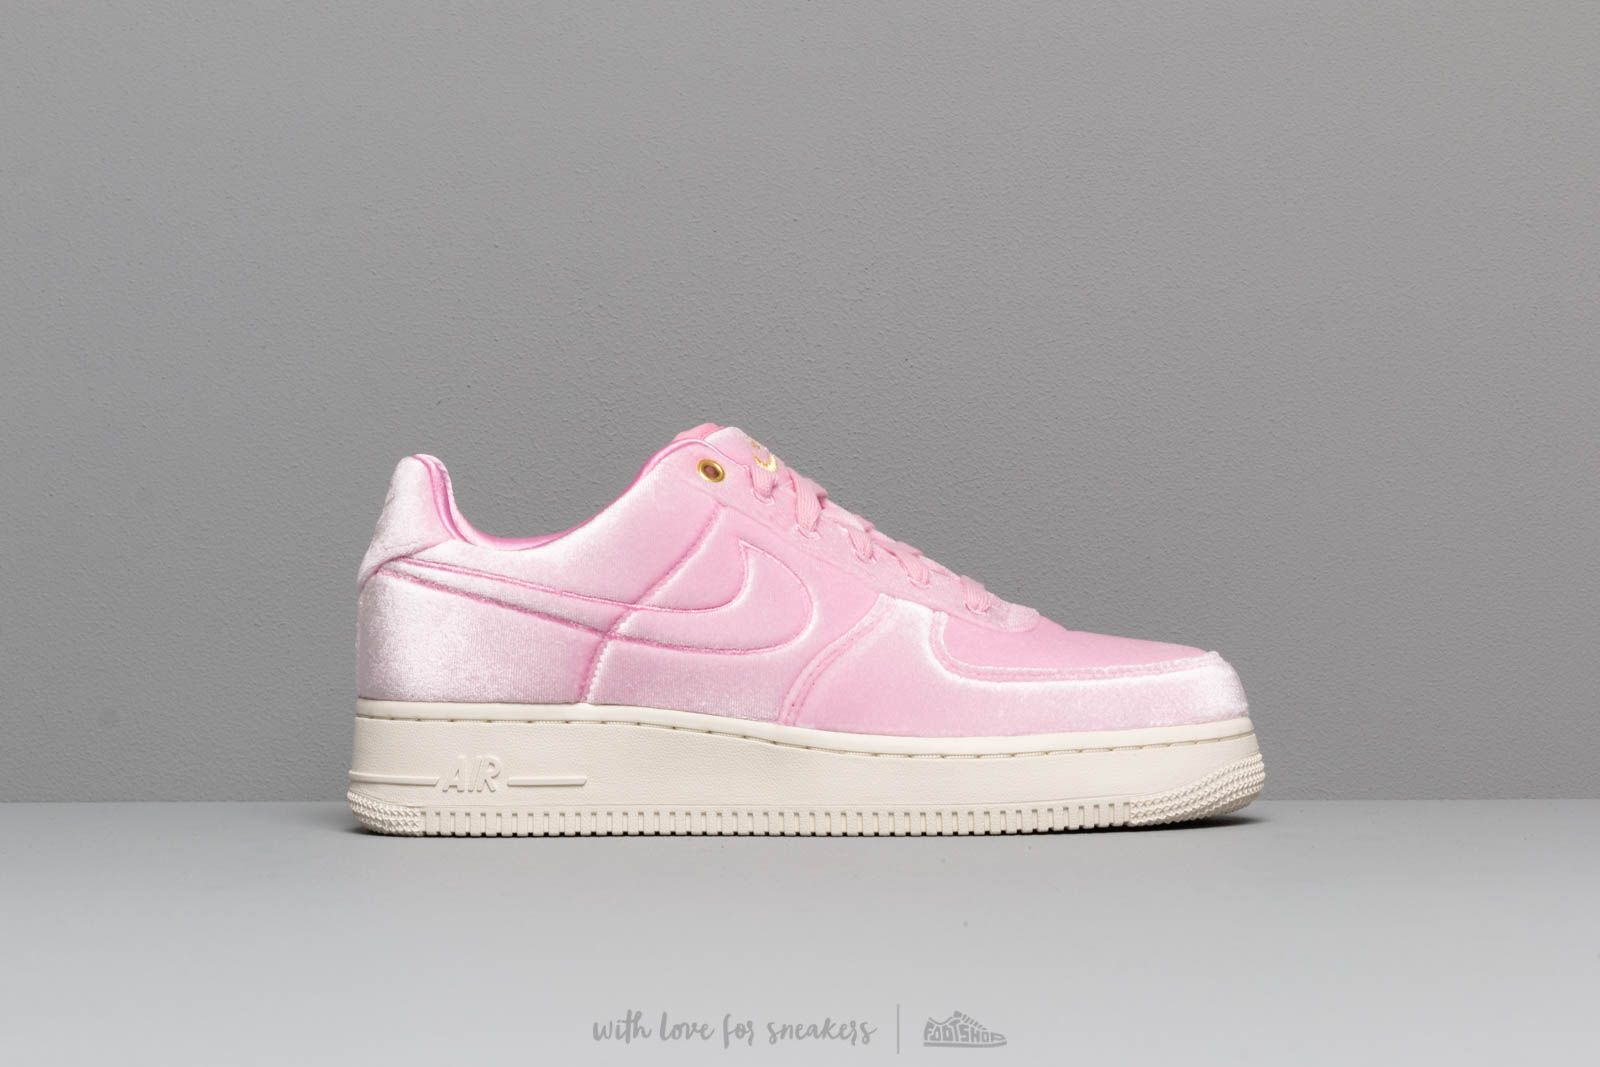 Nike Air Force 1 '07 Premium 3 Pink Rise Pink Rise Sail Metallic Gold | Footshop